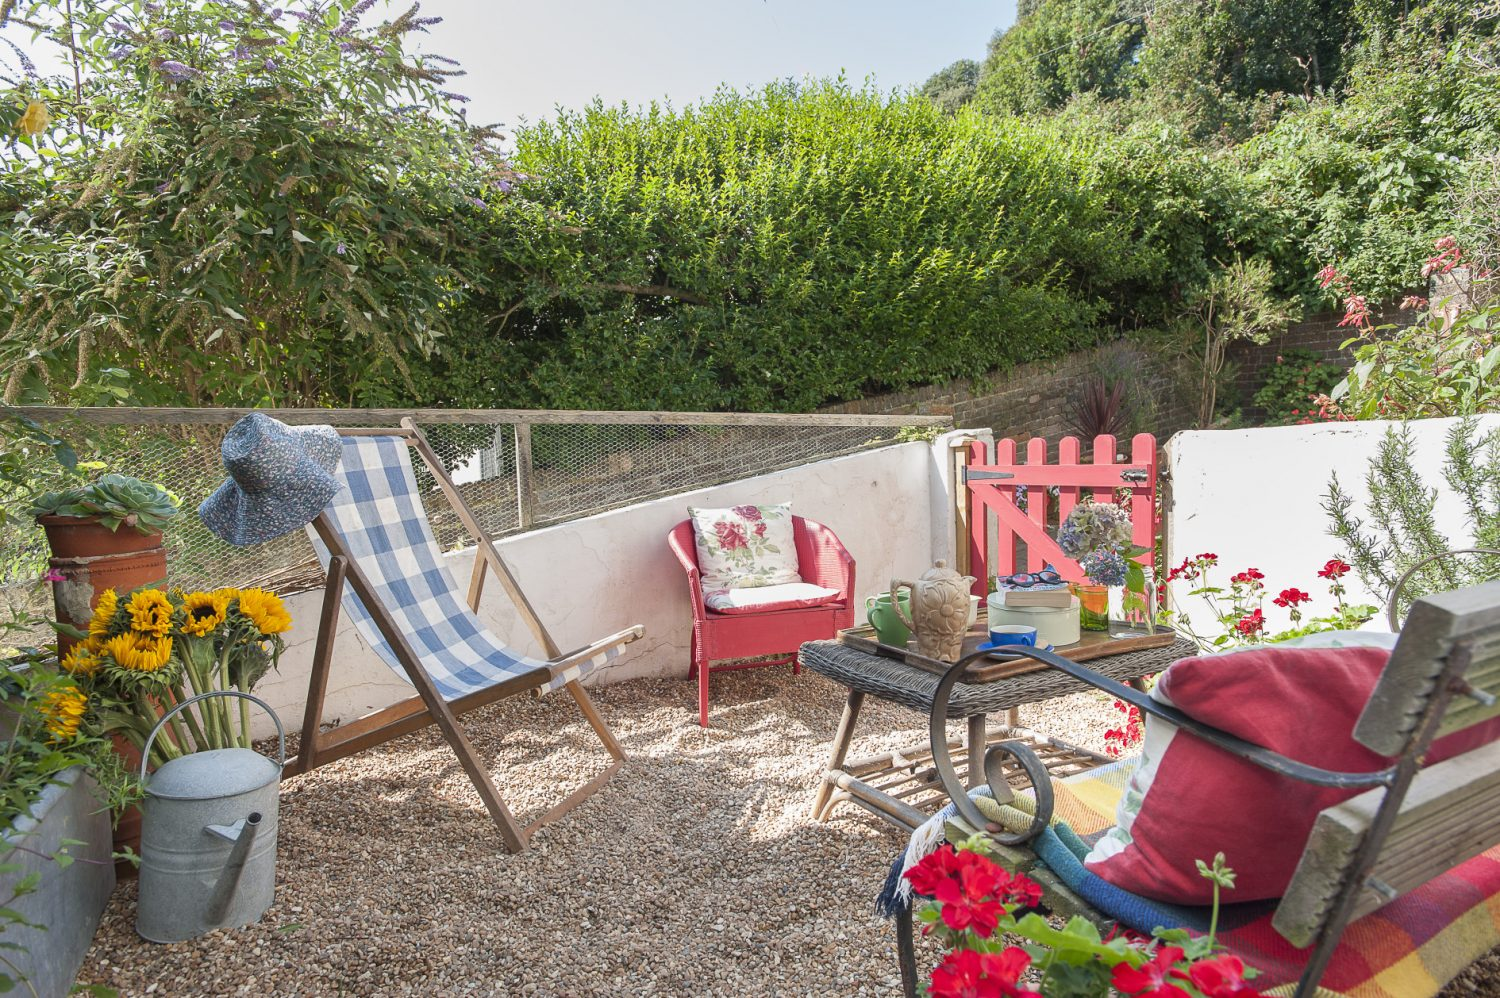 Linda's husband has transformed the small pebble garden at the front of the house into a lovely outdoor seating area which capitalises on the morning sunshine